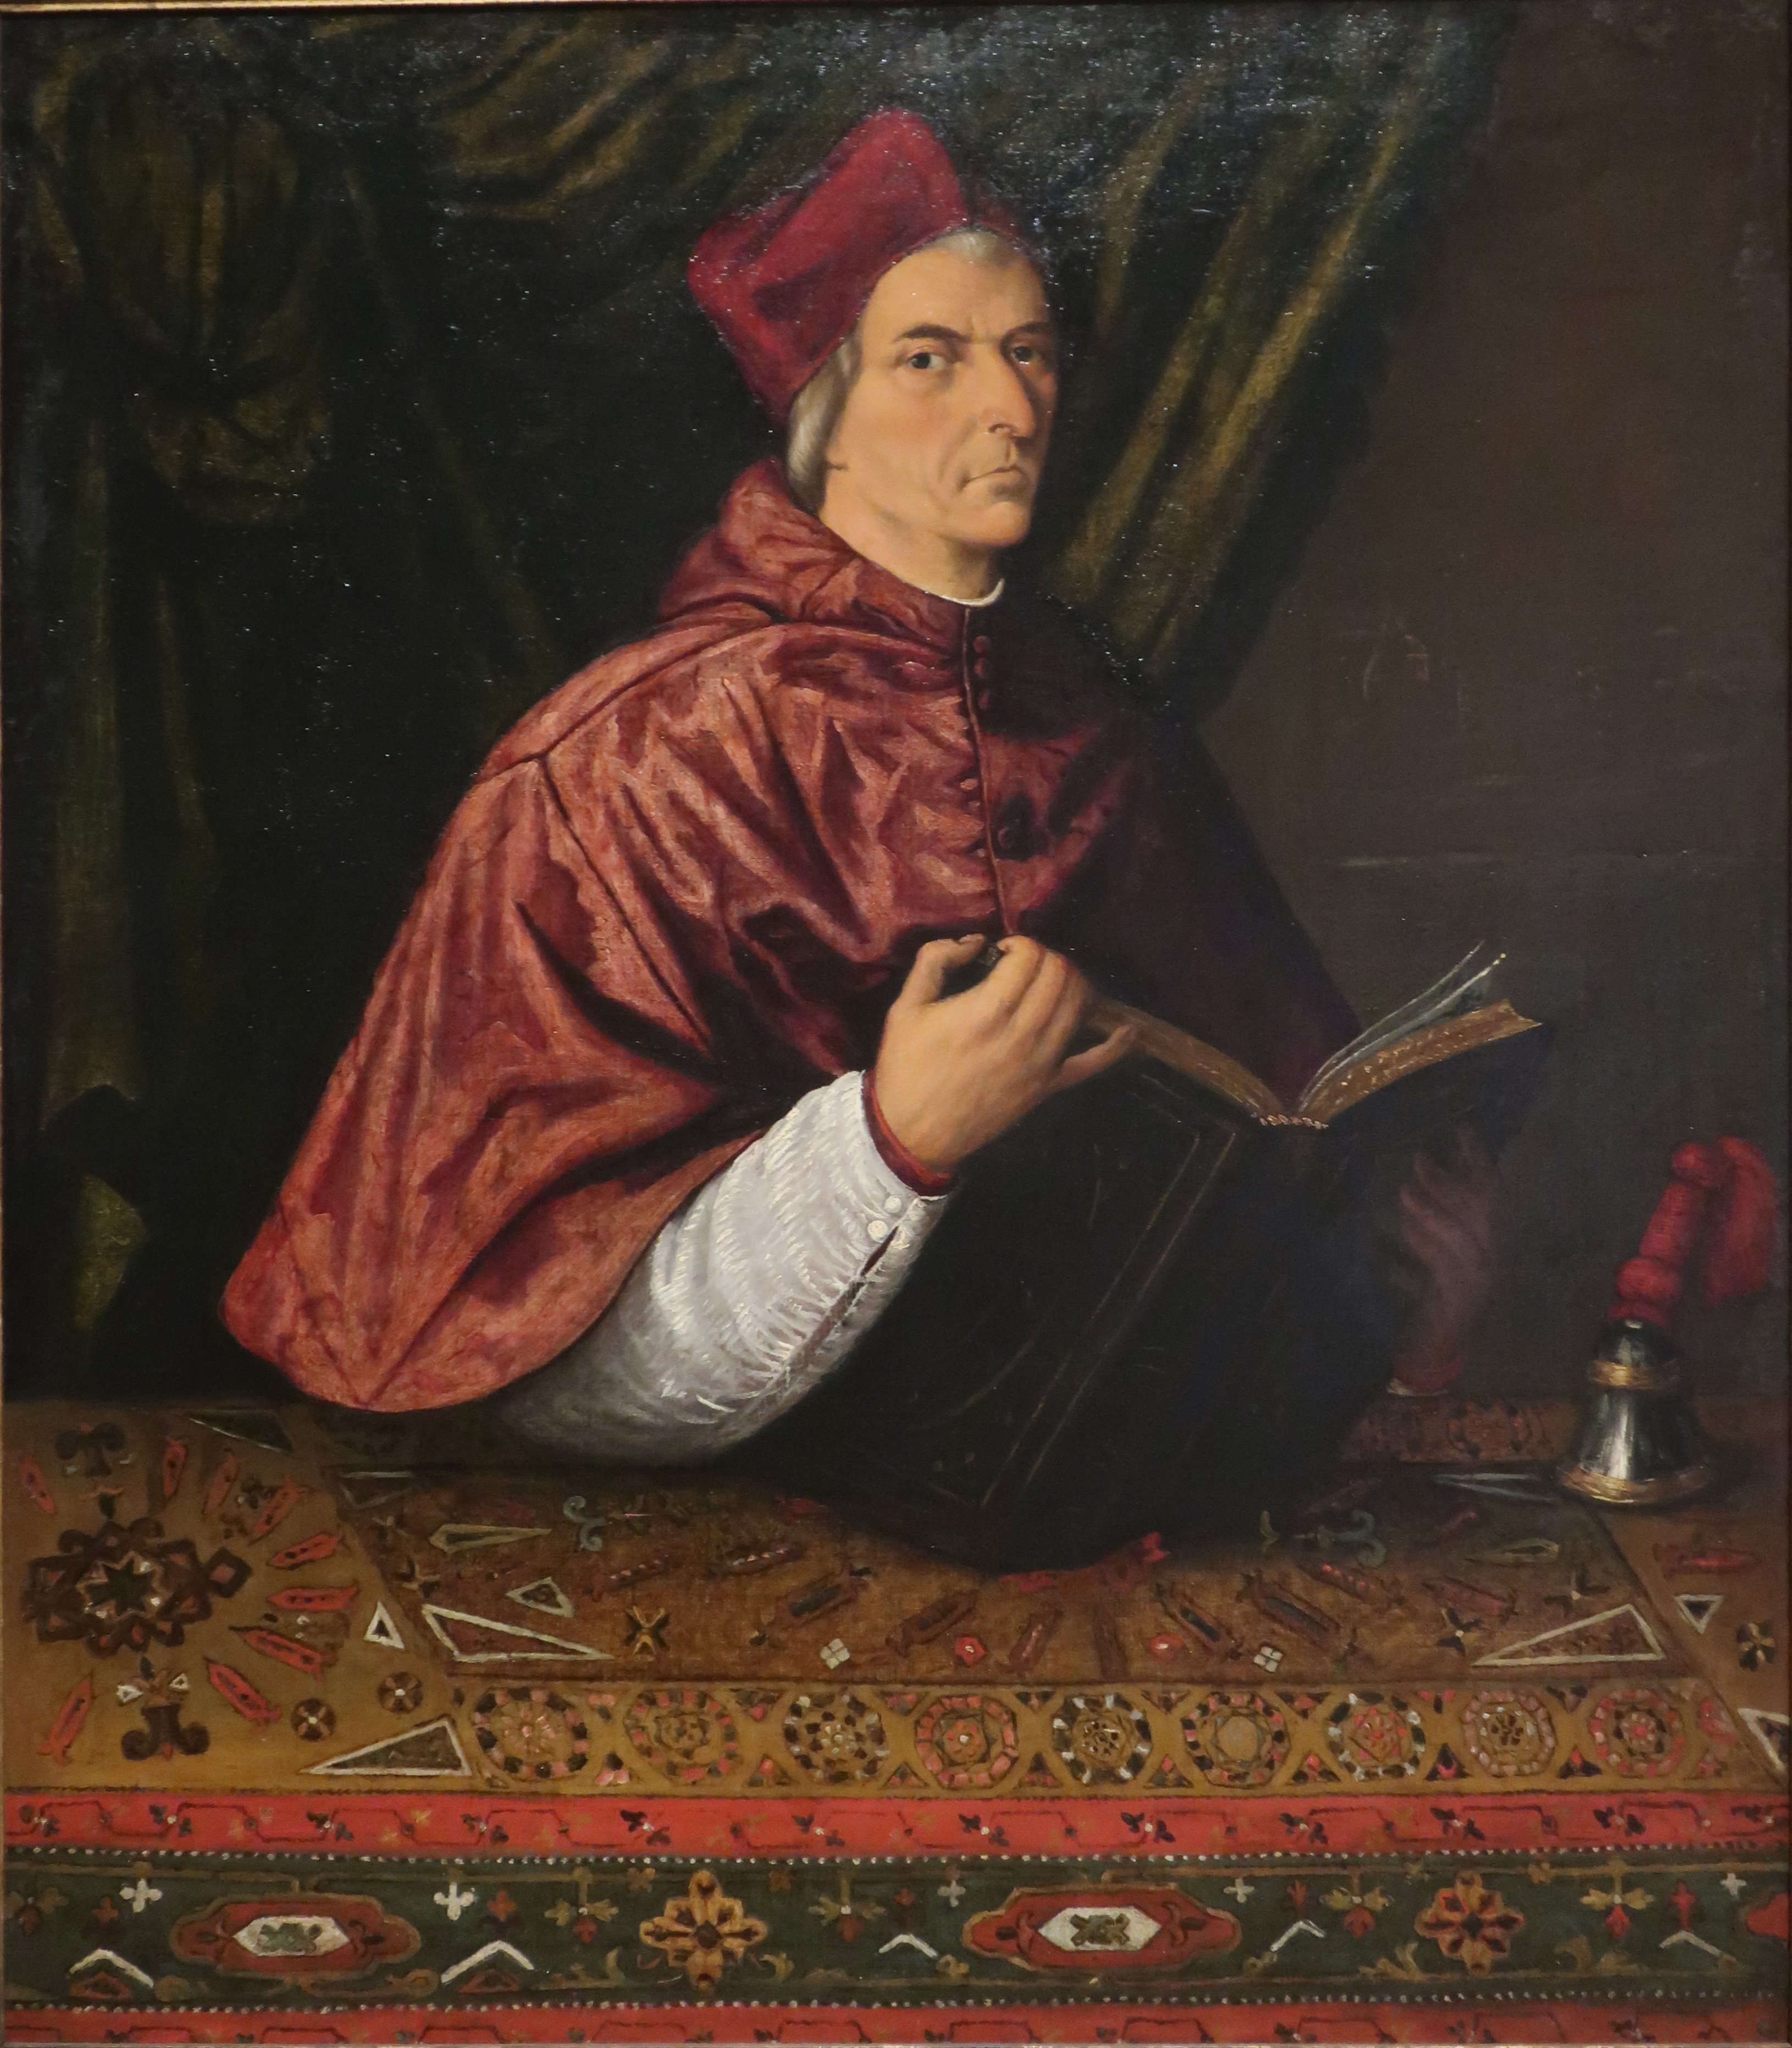 Domenico Grimani